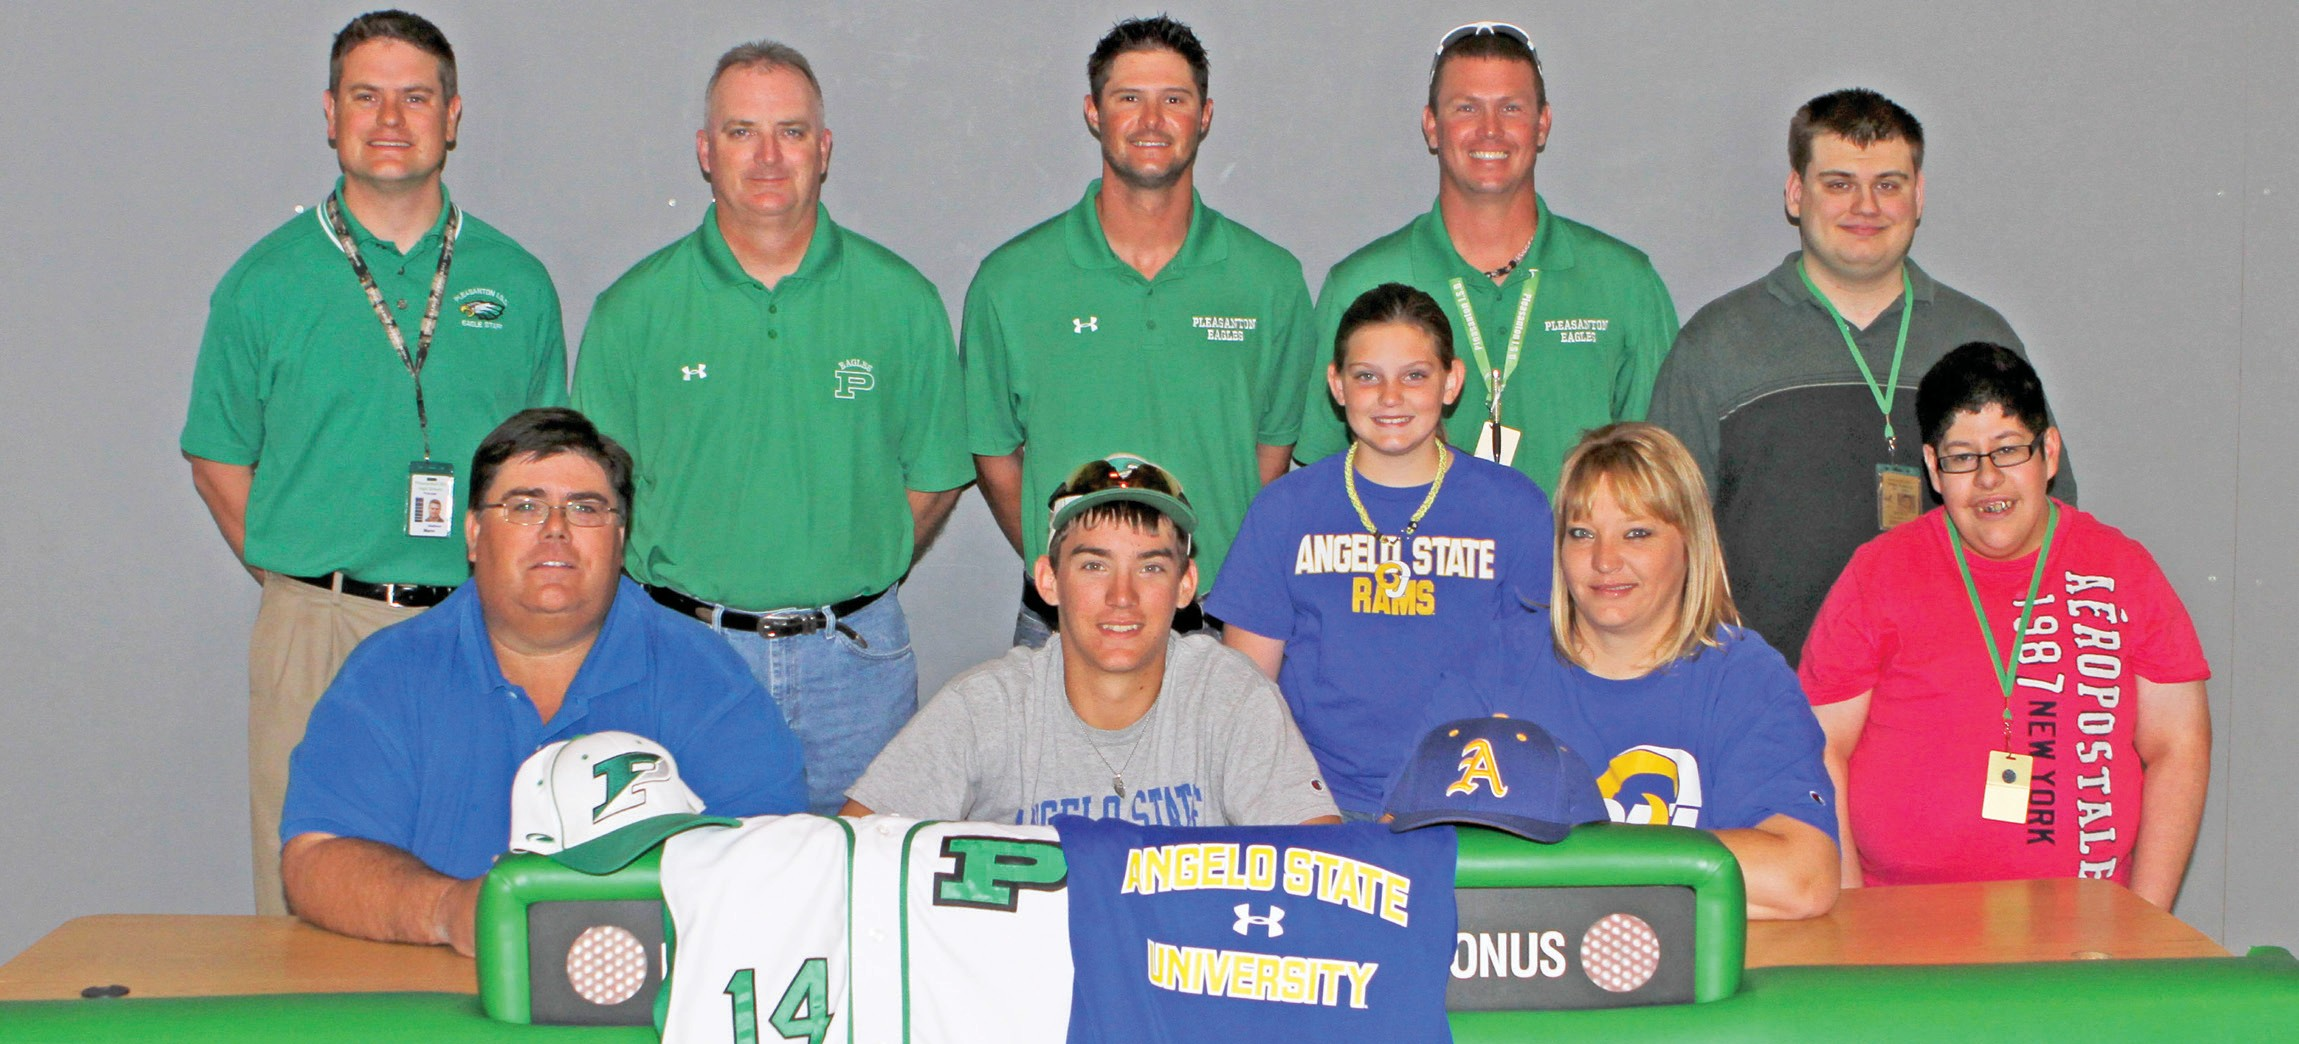 Matt Shannon (center), along with his family and coaches smiles before signing his letter of intent to play baseball at Angelo State University this week. Pictured next to him are: parents Joe and Tammy Shannon. Behind is his sister Kaycie. Back row: Principal Dr. Mann, Pleasanton Athletic Director Tab Dumont, Assistant Baseball Coach Bruce Schorsch, Head Baseball Coach Chris Ingram, Ryan Jaloway and JP Garcia.